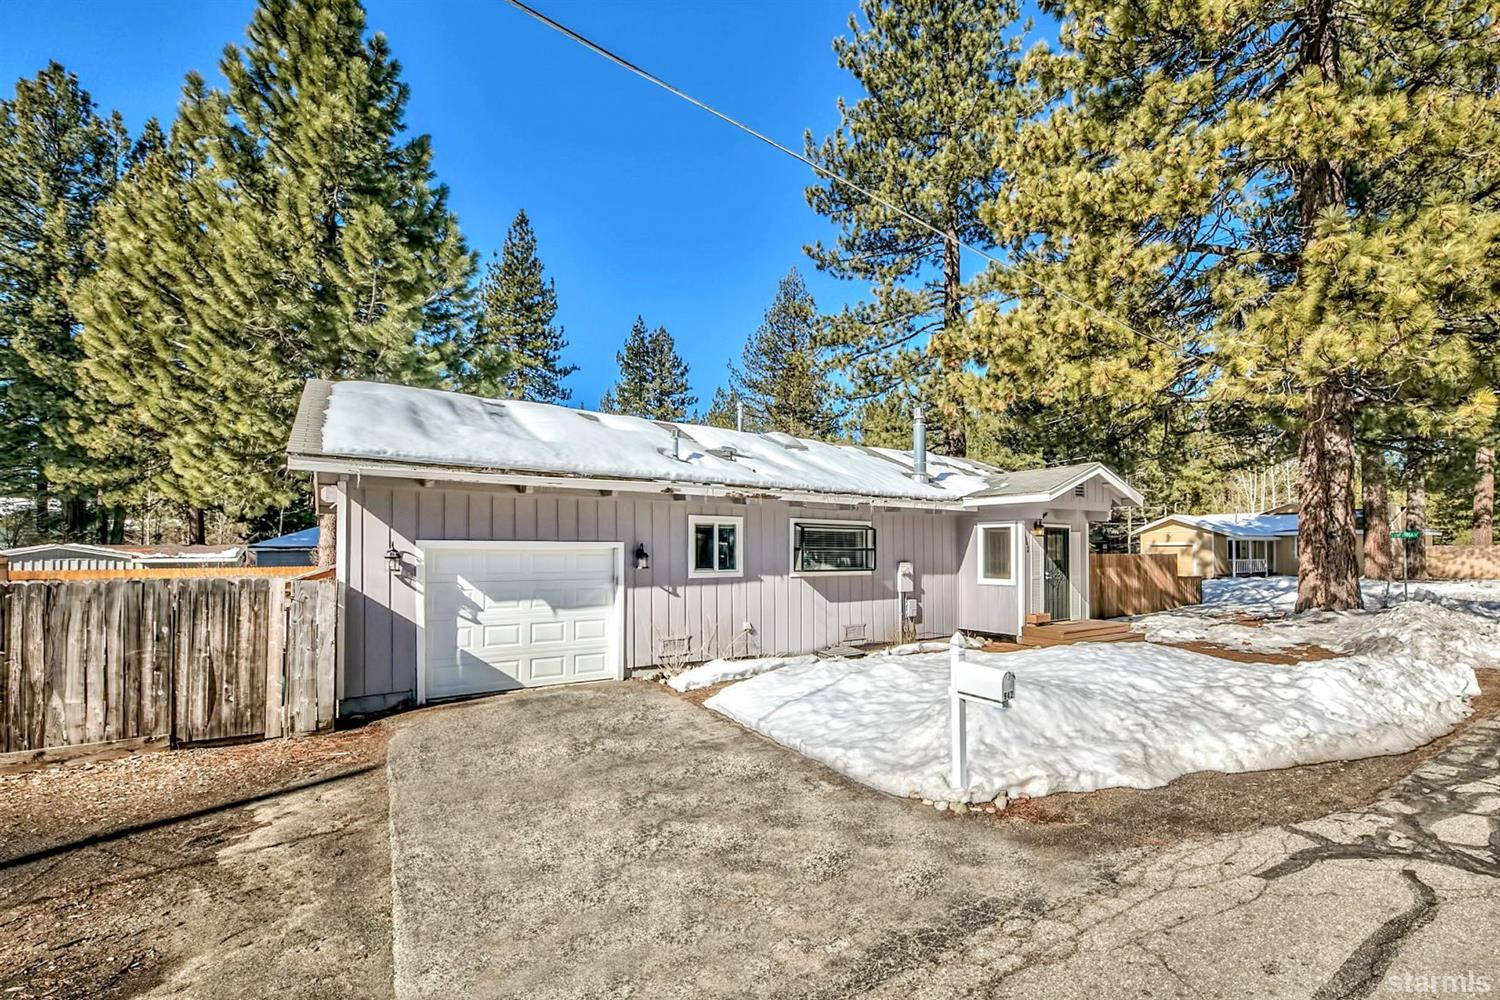 Lodi Avenue, SOUTH LAKE TAHOE, CA 96150